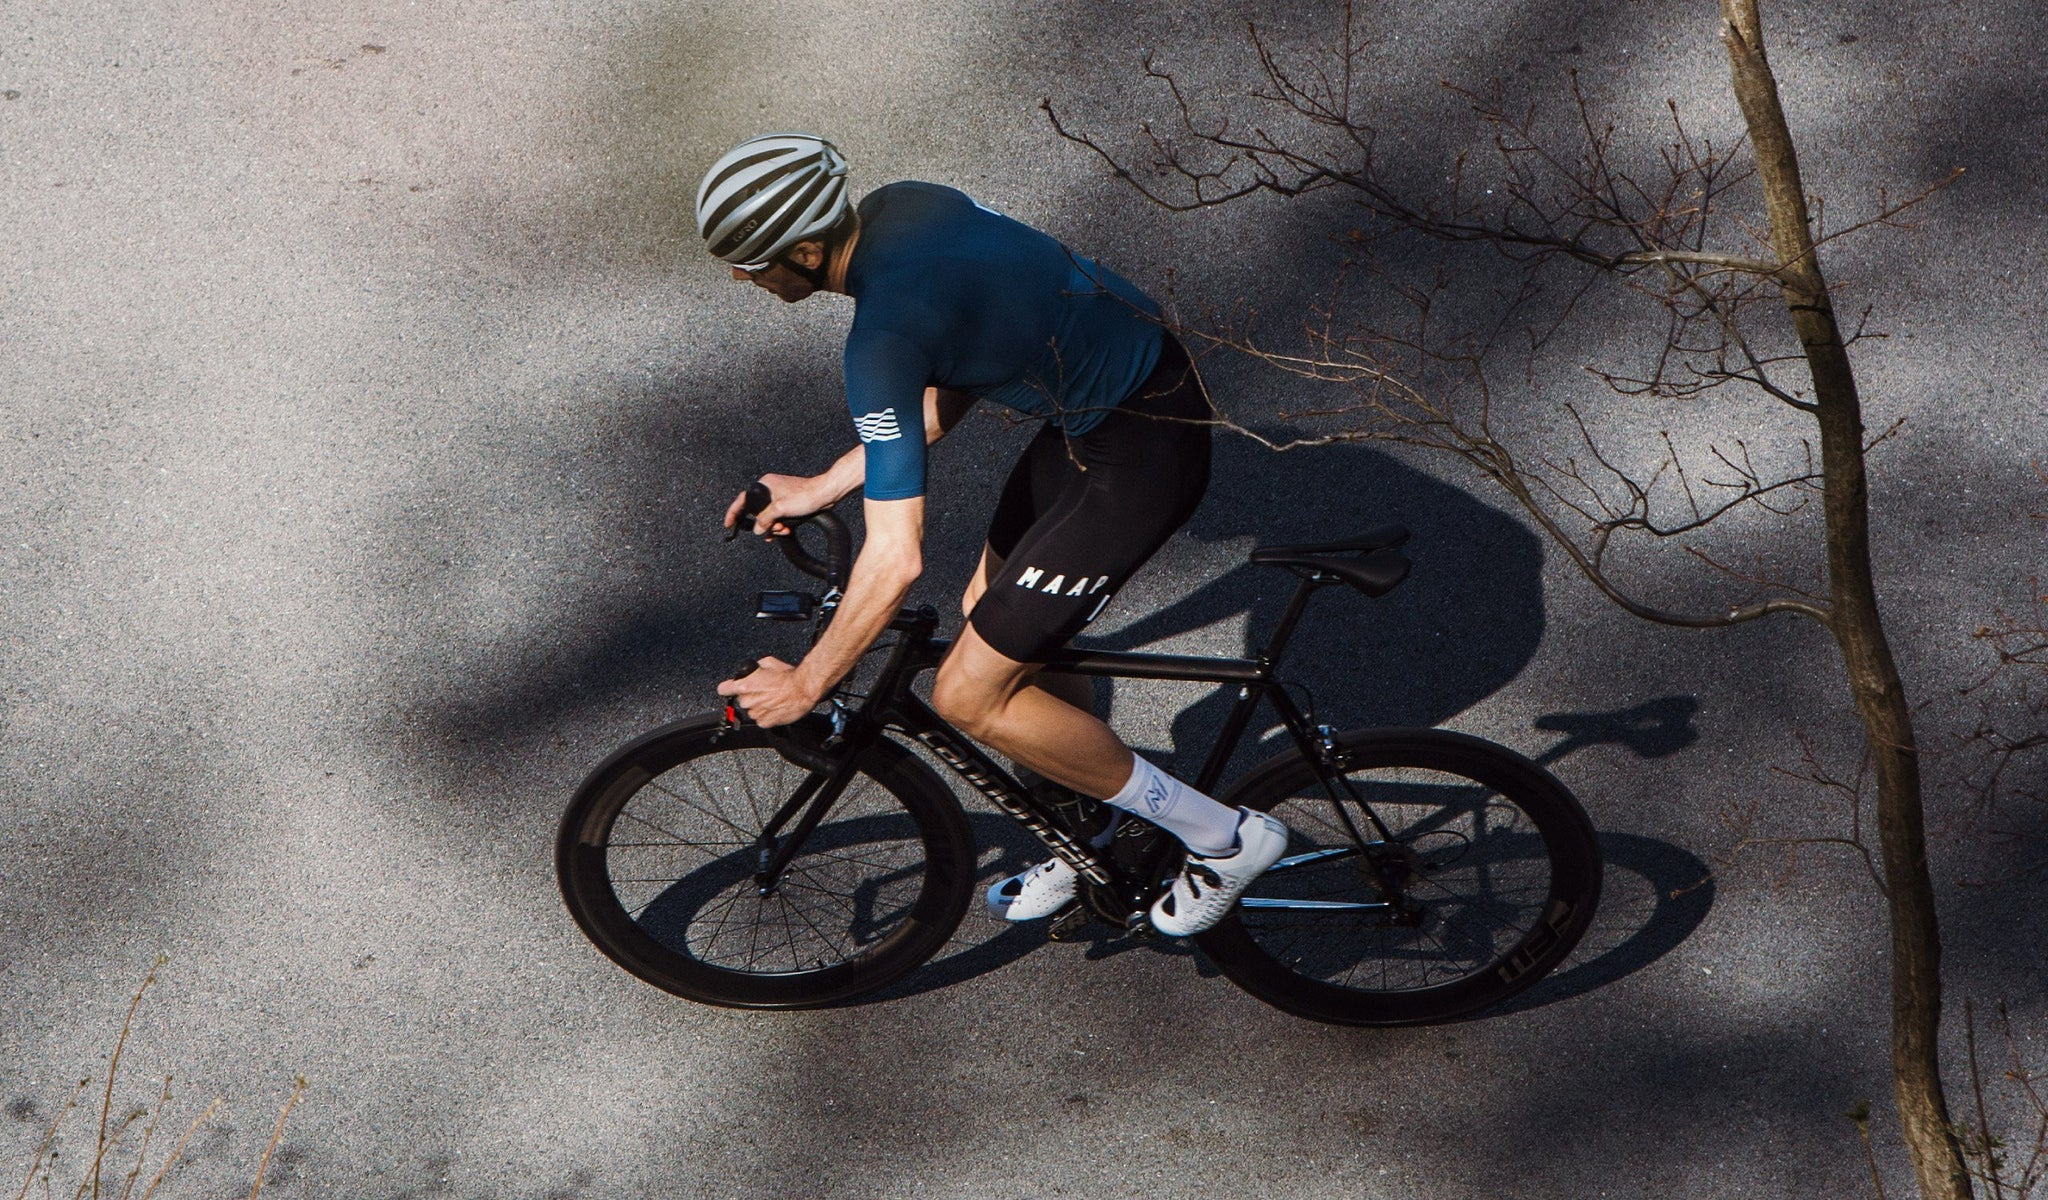 MAAP Team Cycling Bib Shorts 3.0 in Black for riding in warm weather conditions.